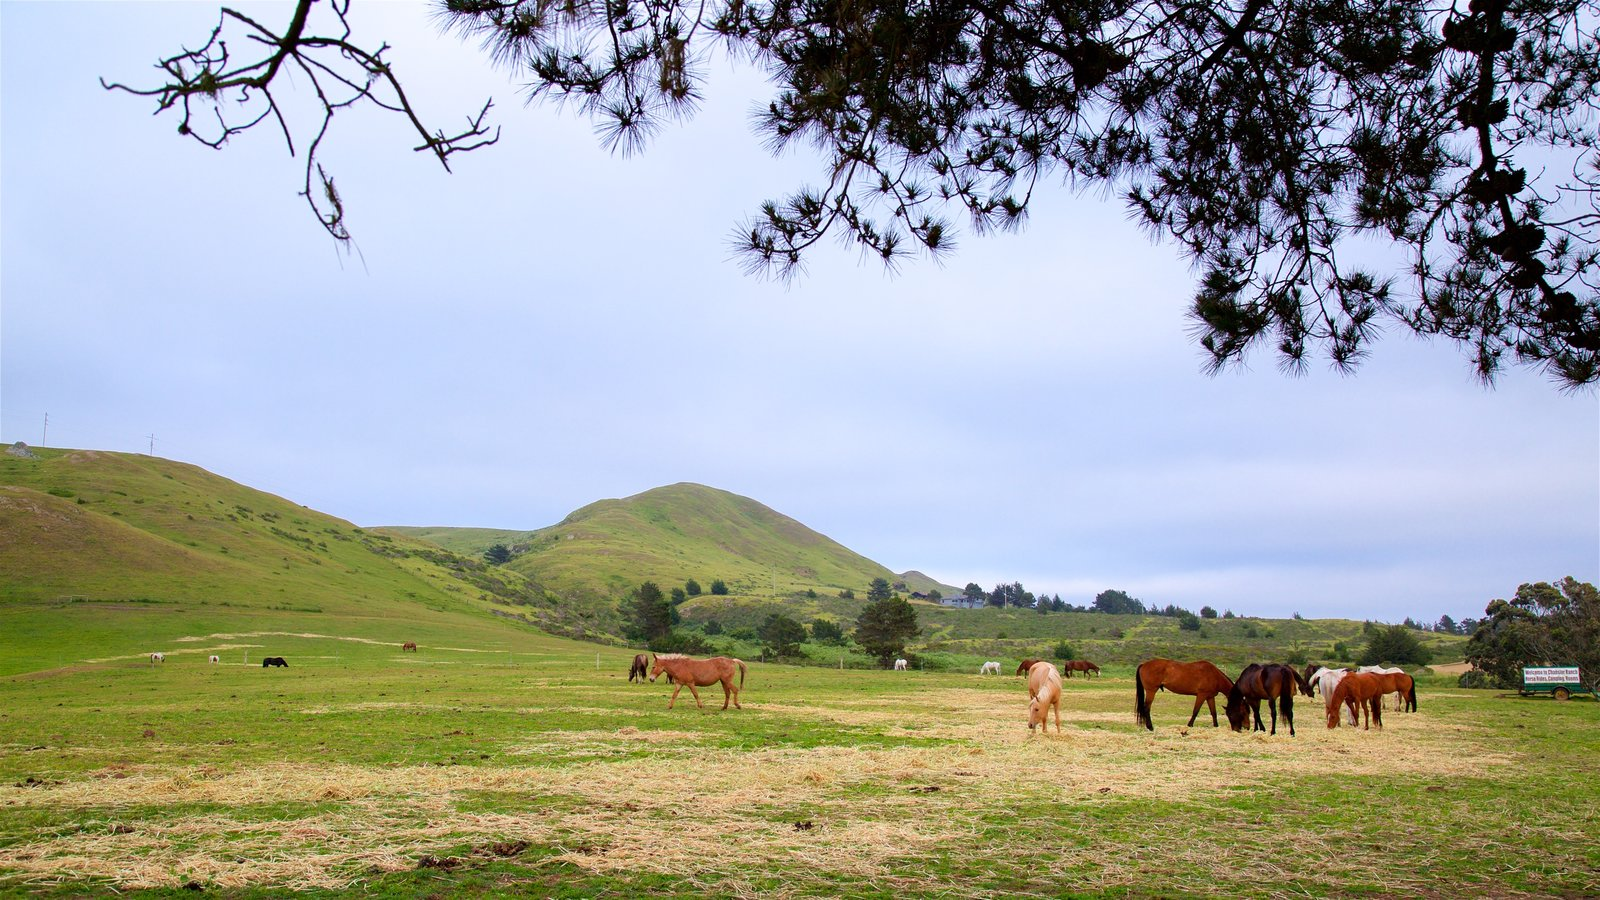 Sonoma Valley showing tranquil scenes and land animals